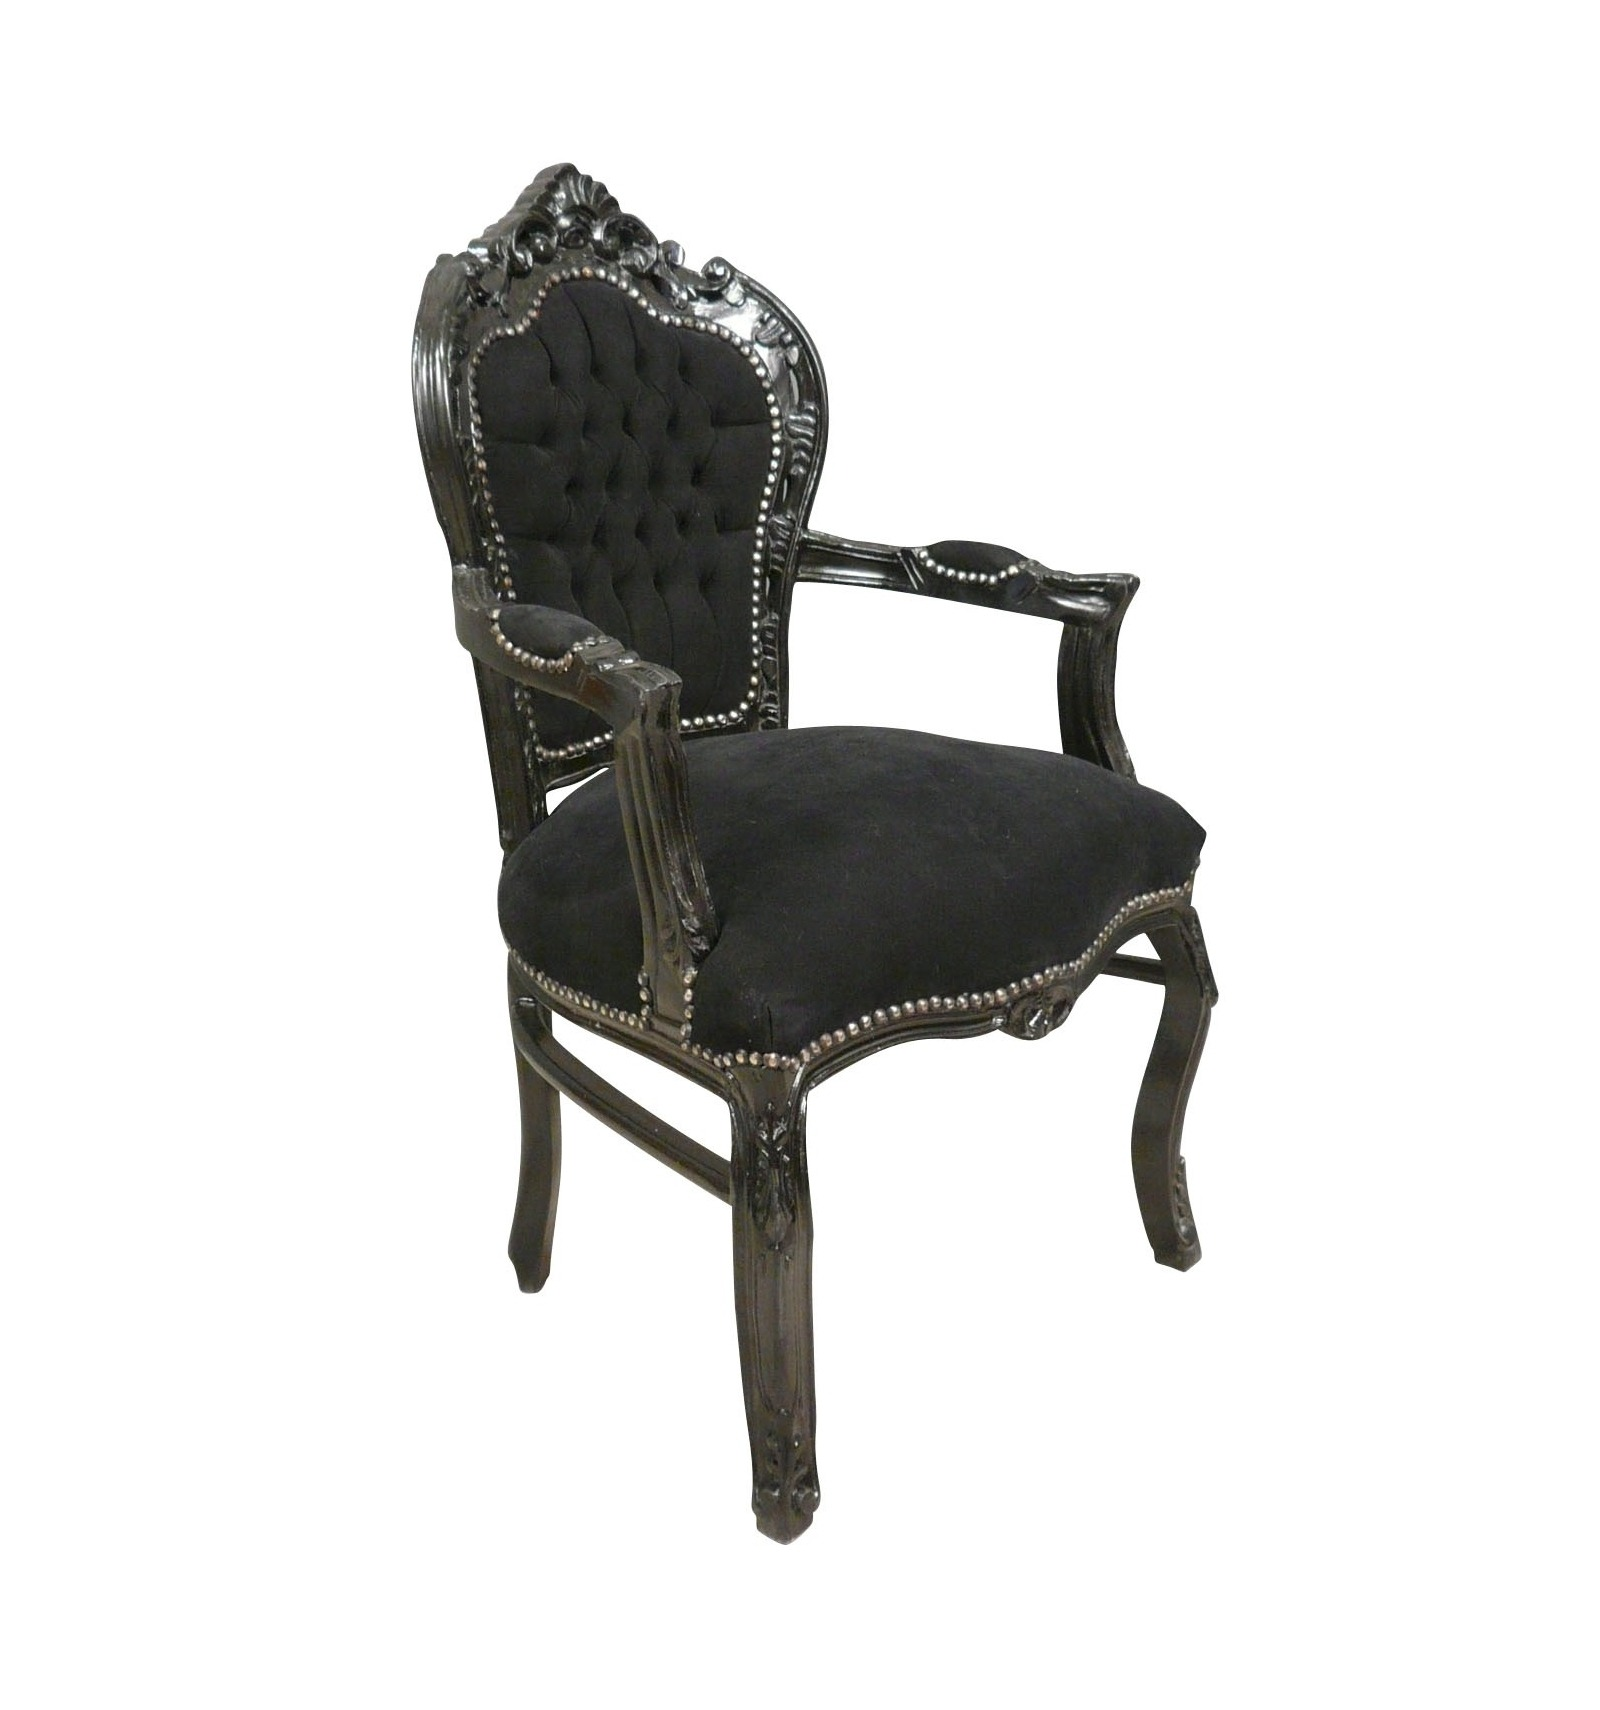 fauteuil baroque noir chaises baroques. Black Bedroom Furniture Sets. Home Design Ideas